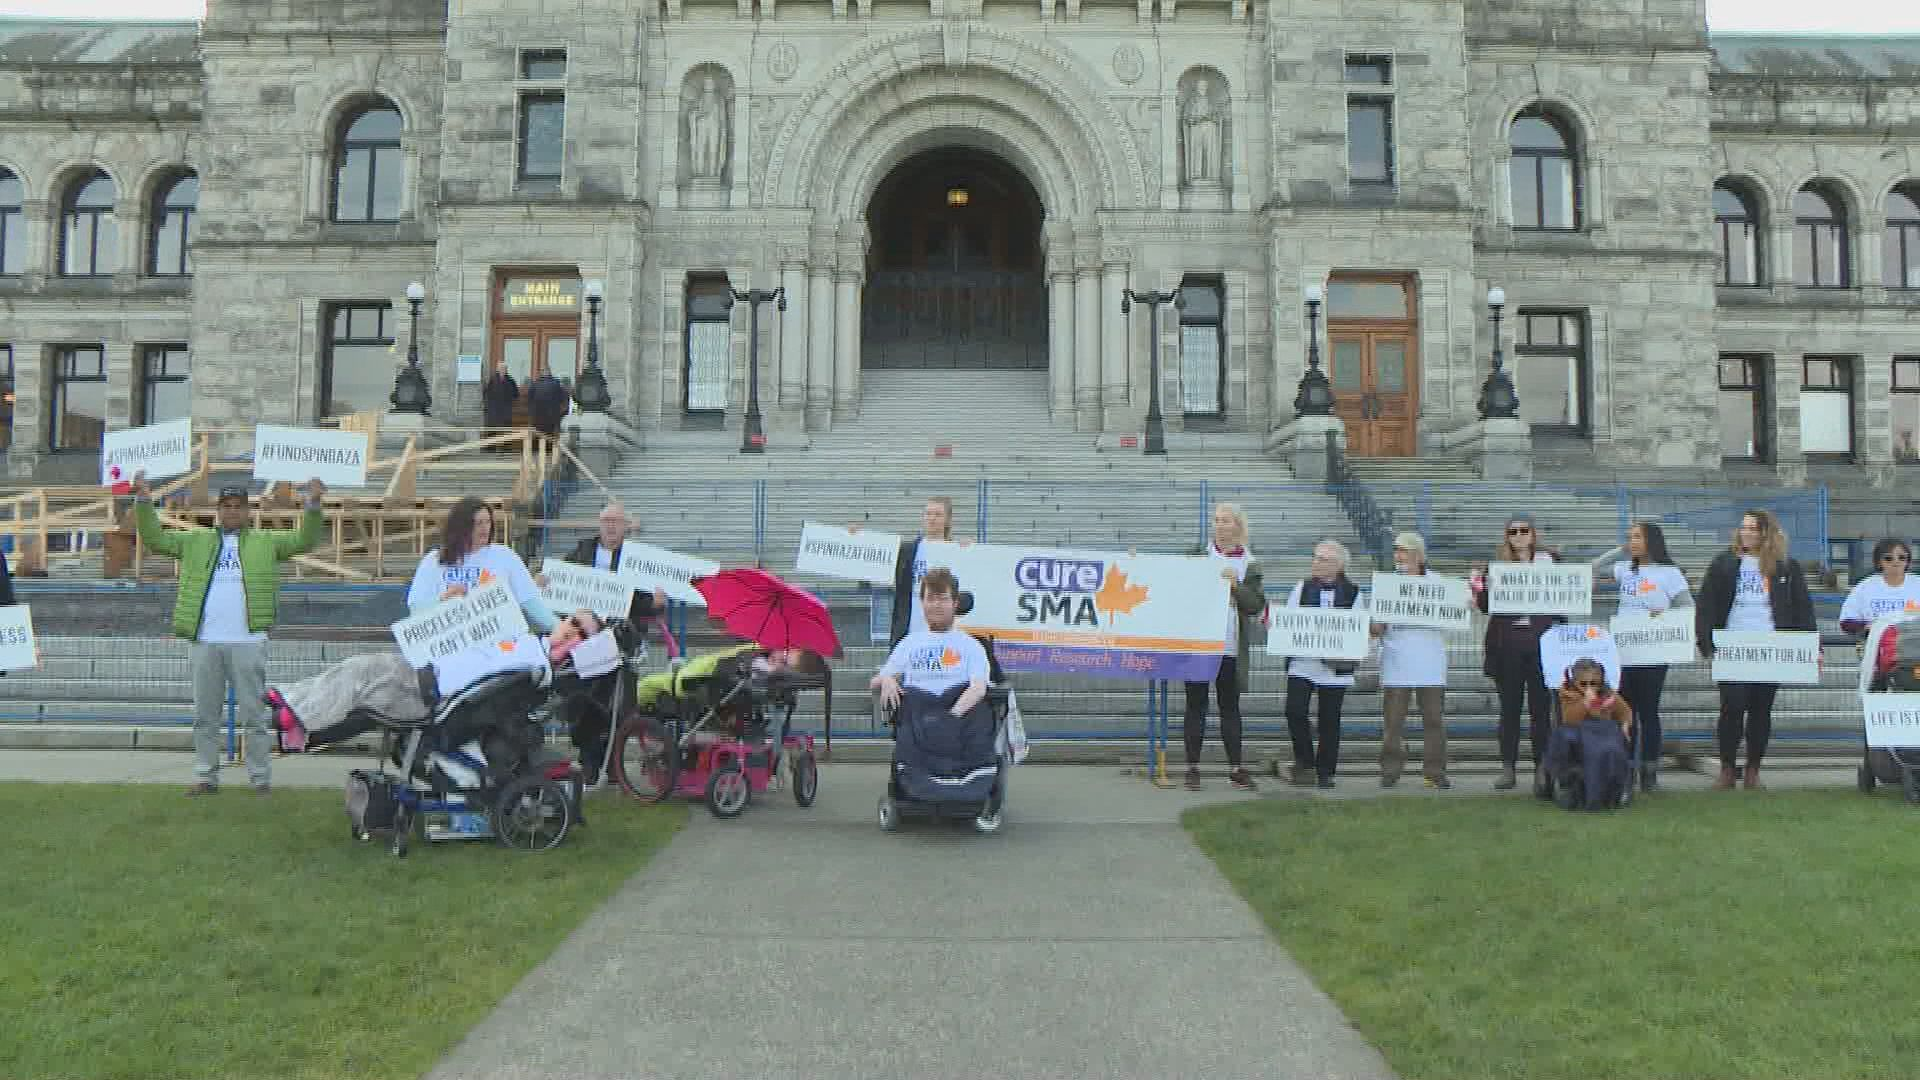 Spinal muscular atrophy patients march in Victoria to demand treatment